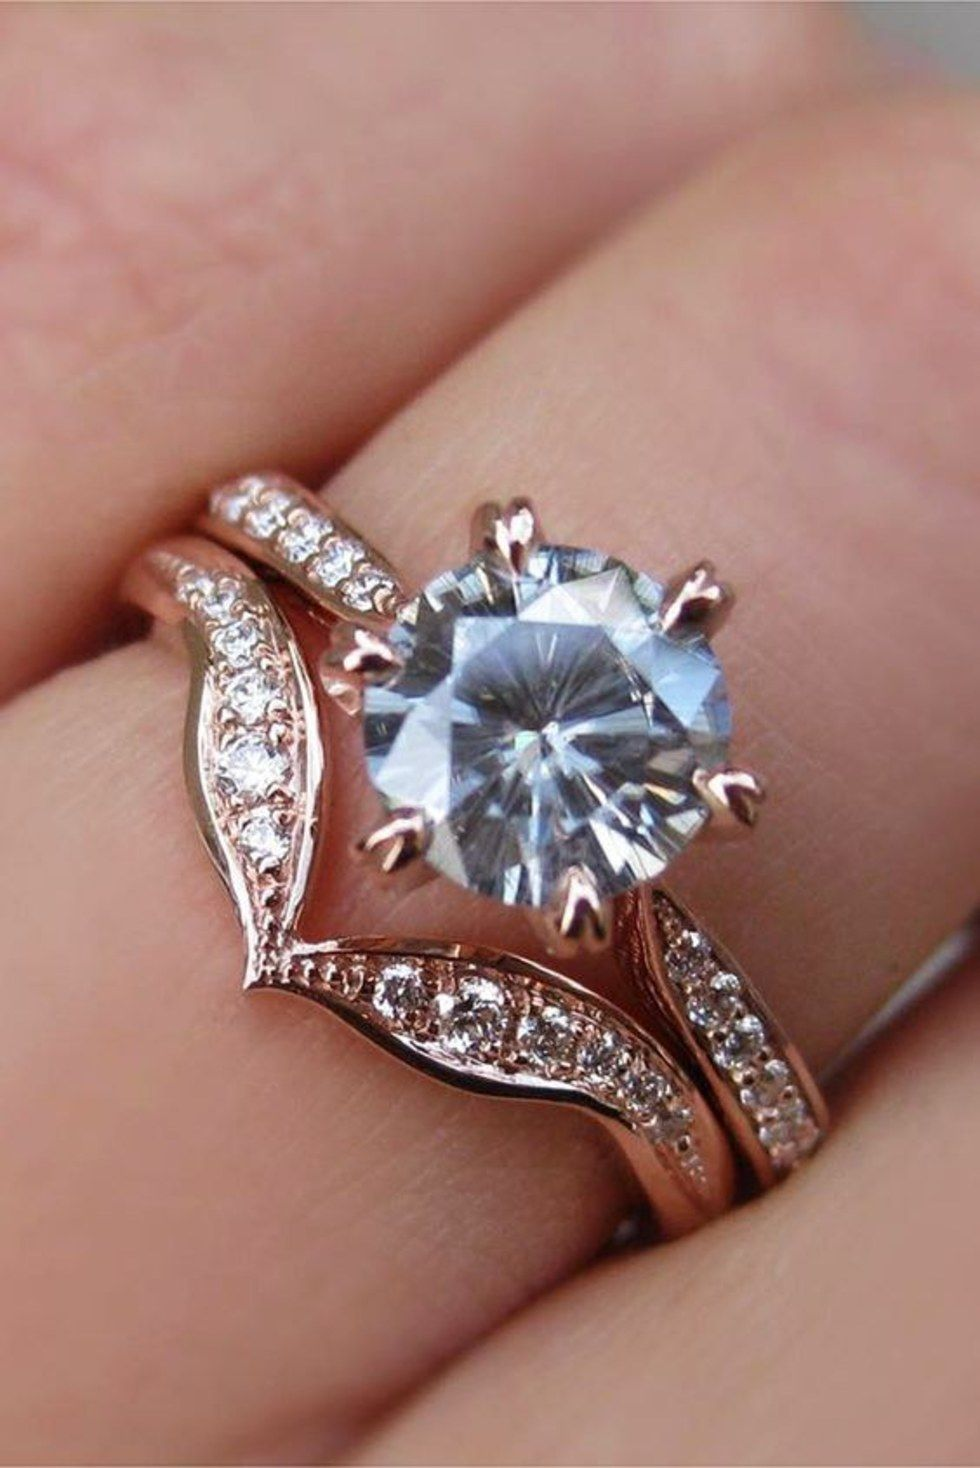 engagement perfect this best rings will wow roundengagementrings on any pinterest stunning ring archangel gabrielco contemporary diamond shank round split images